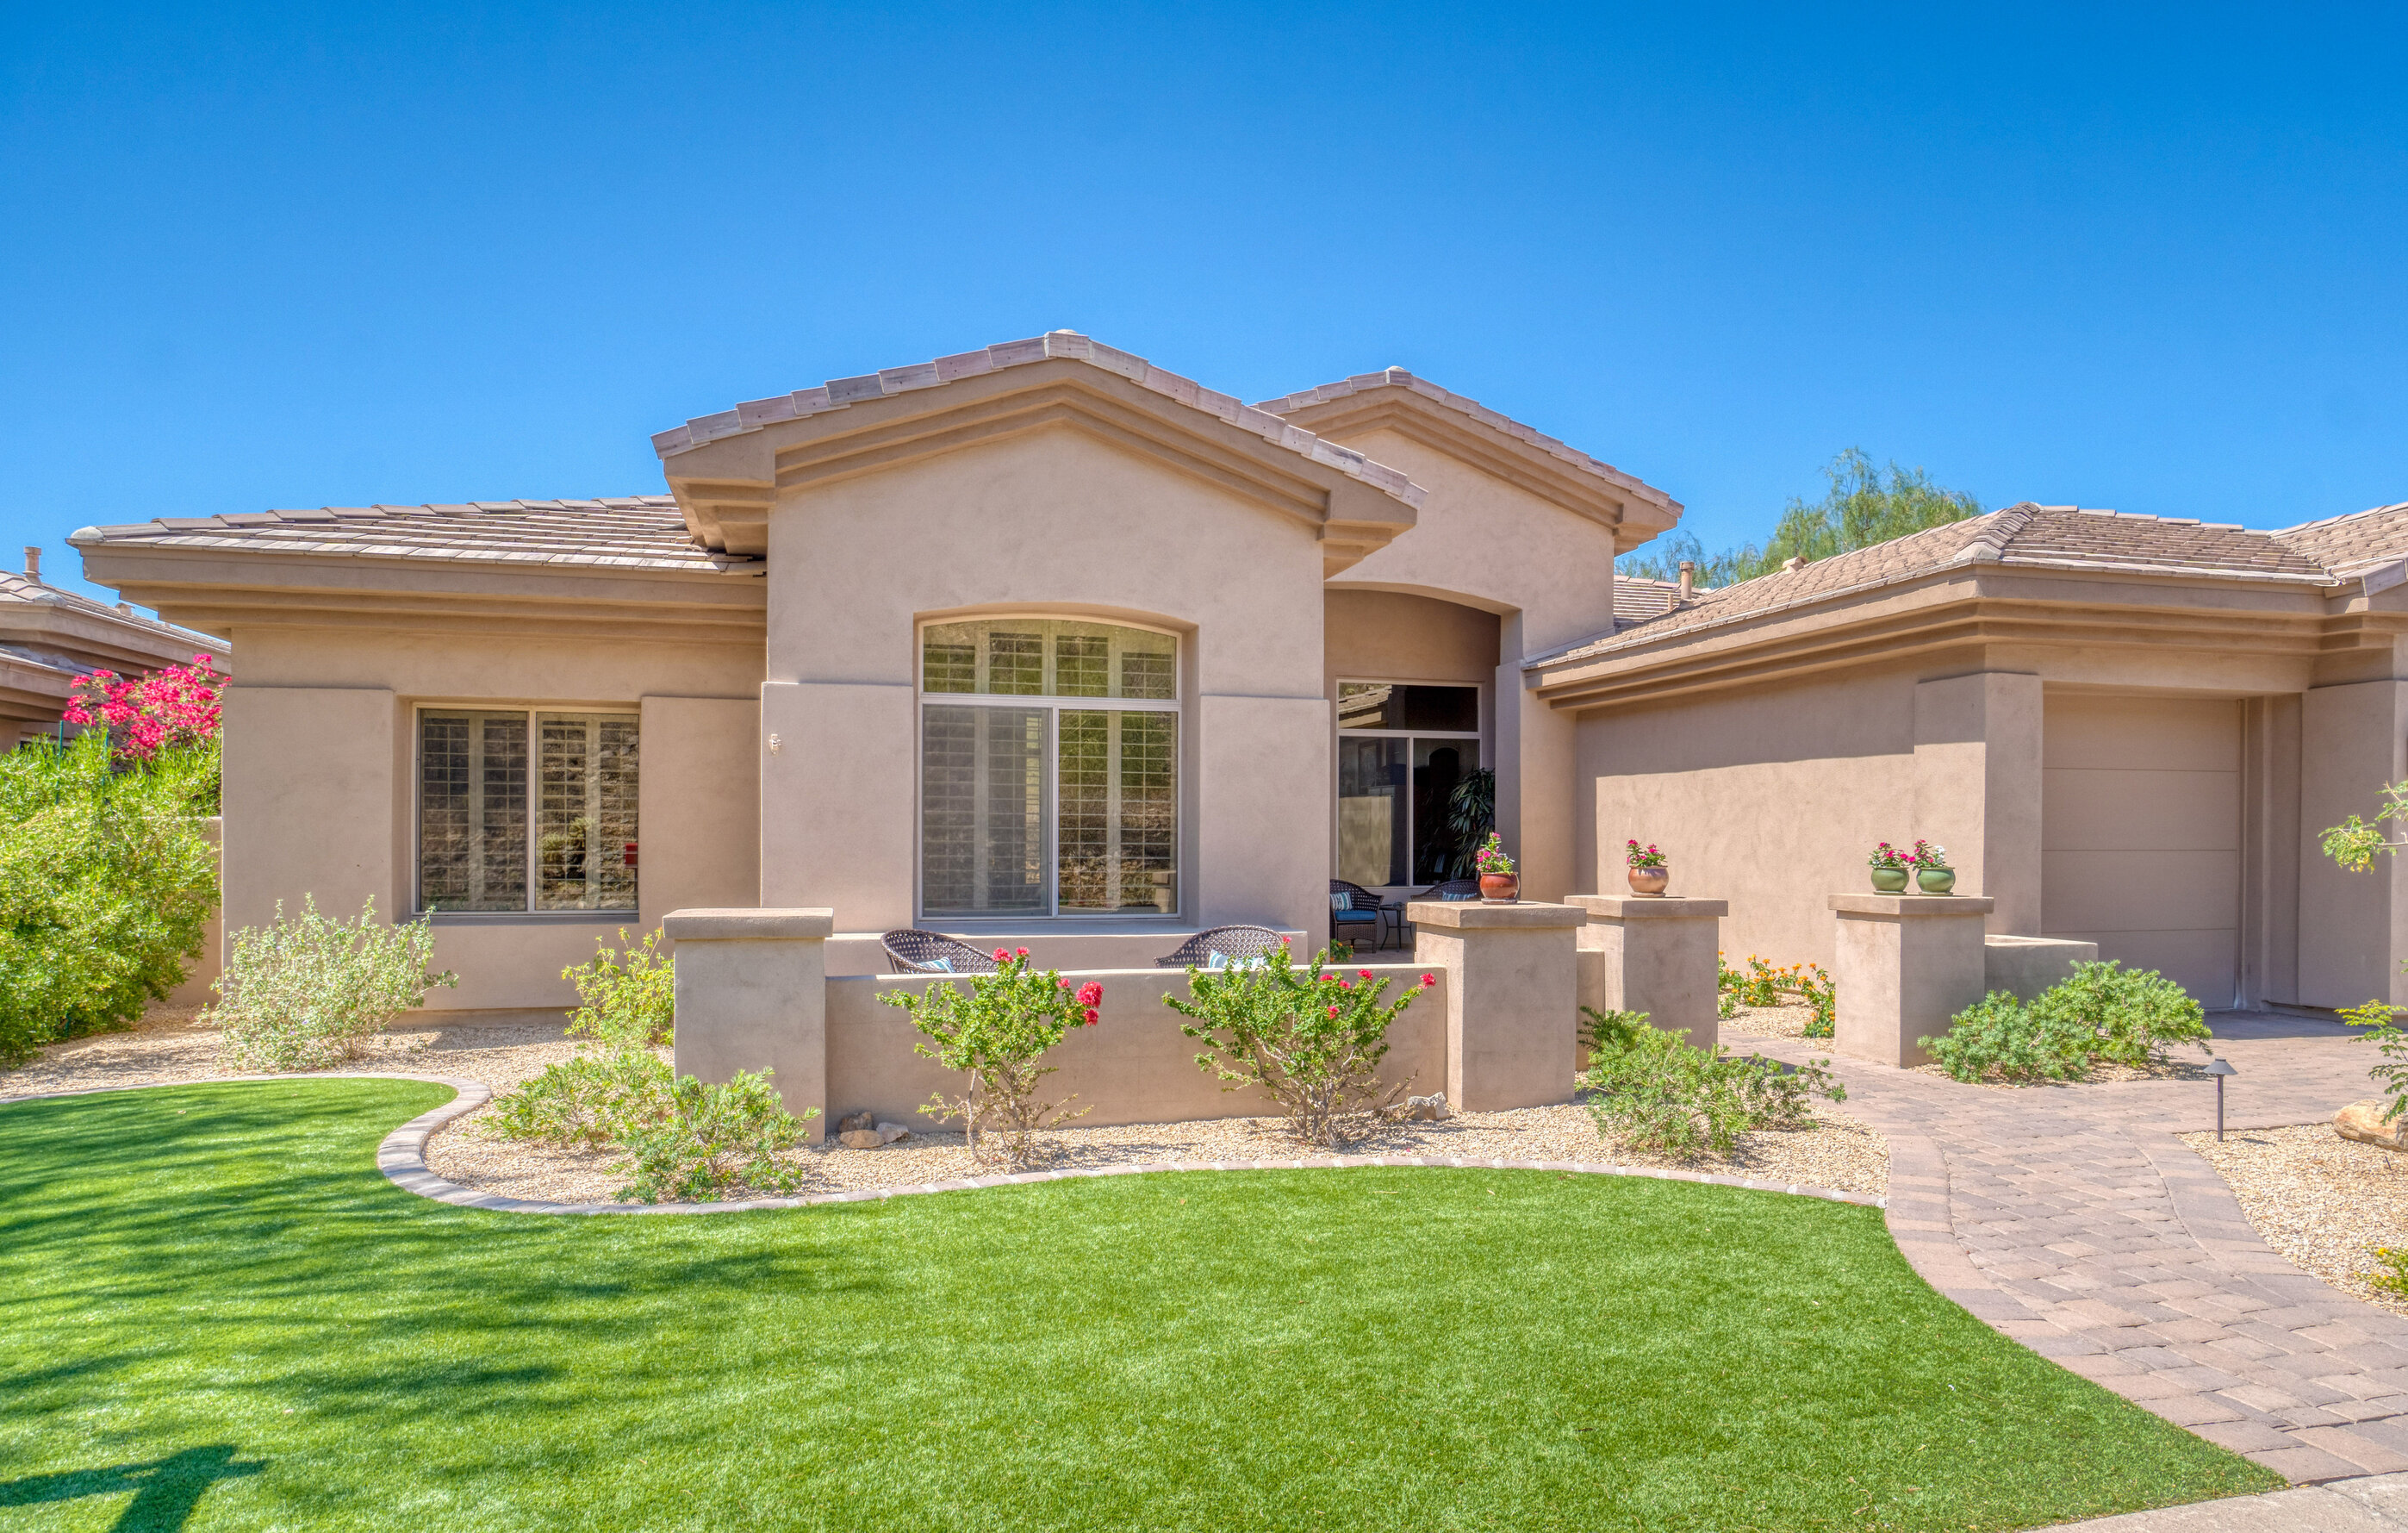 An Arizona home with green front yard and several green shrubs.